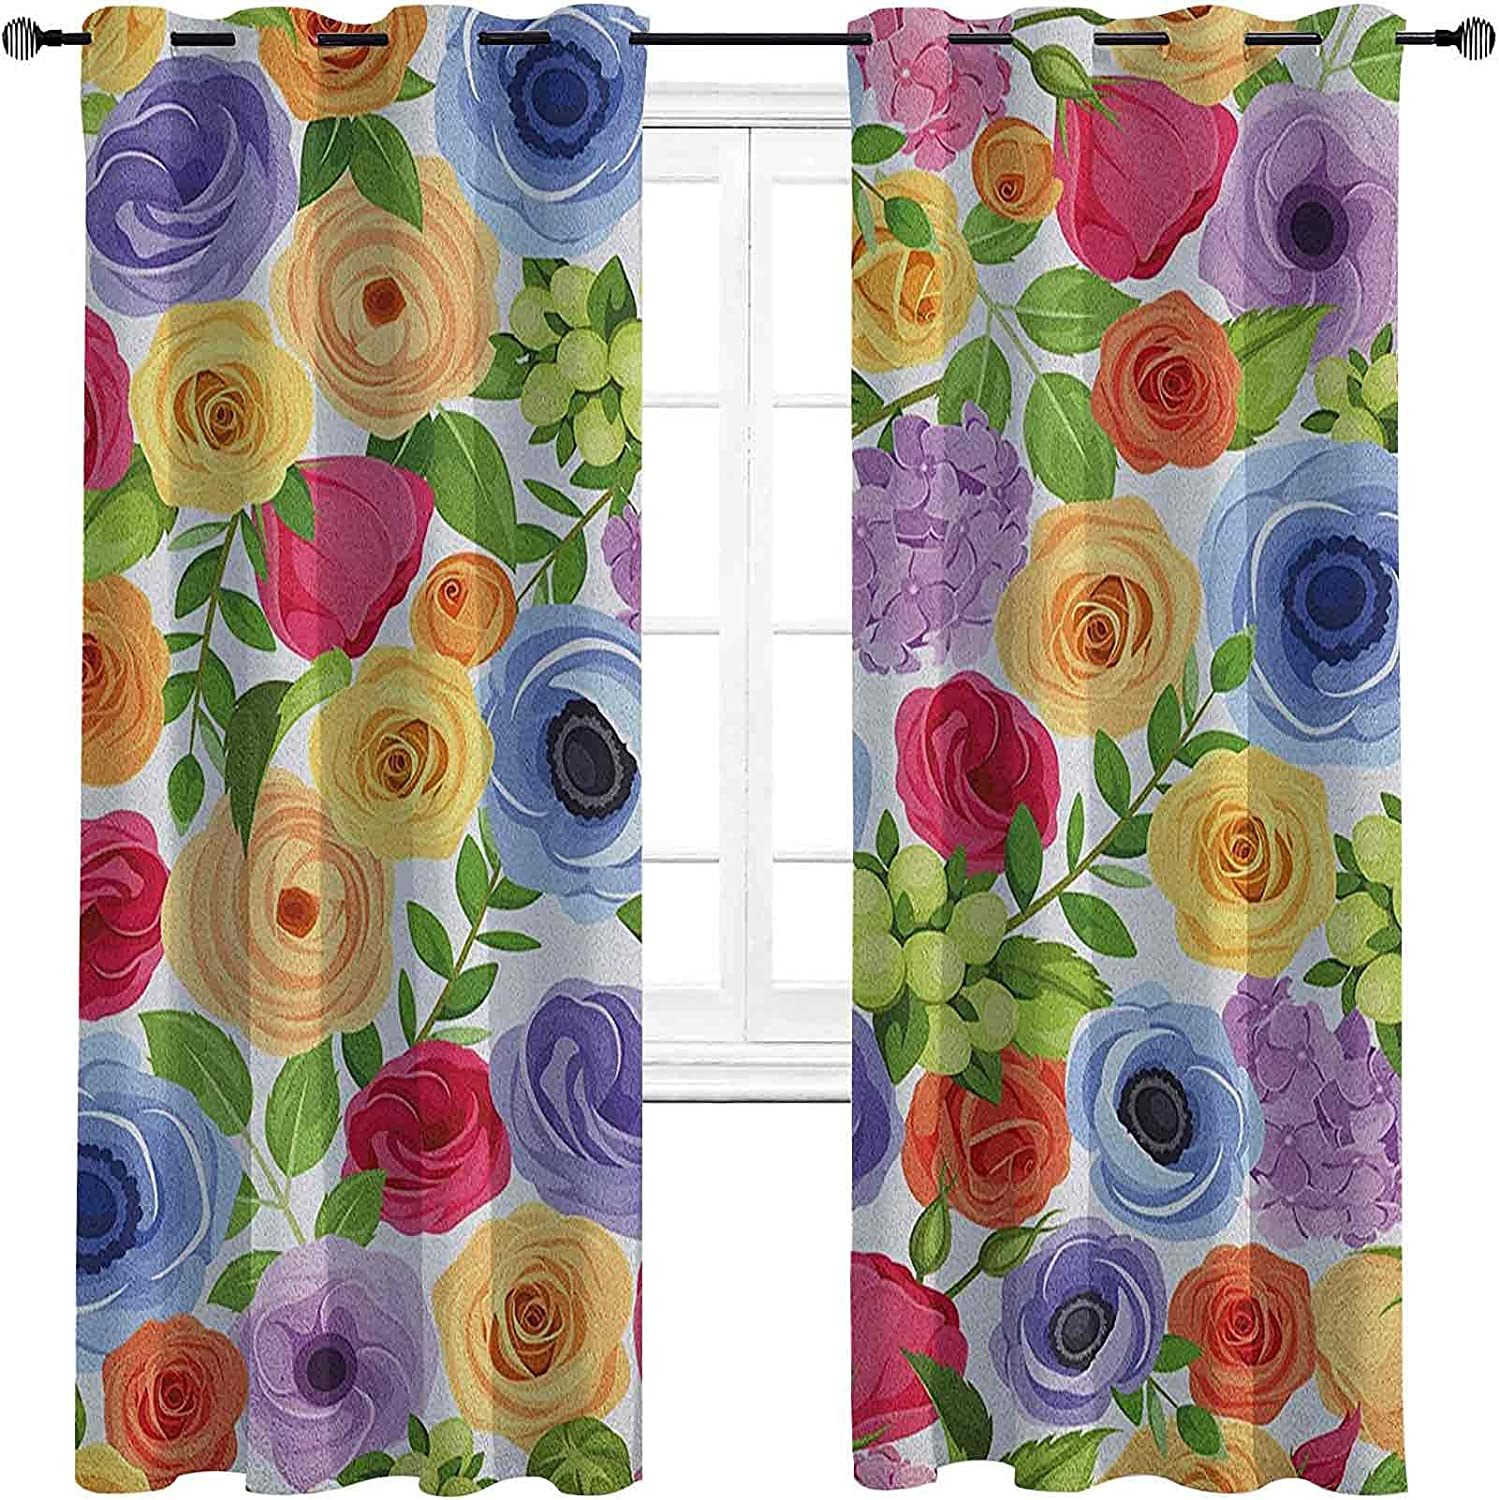 Anemone Flower High-Strength Blackout 35% OFF Curtains Colorful Ornate Phoenix Mall